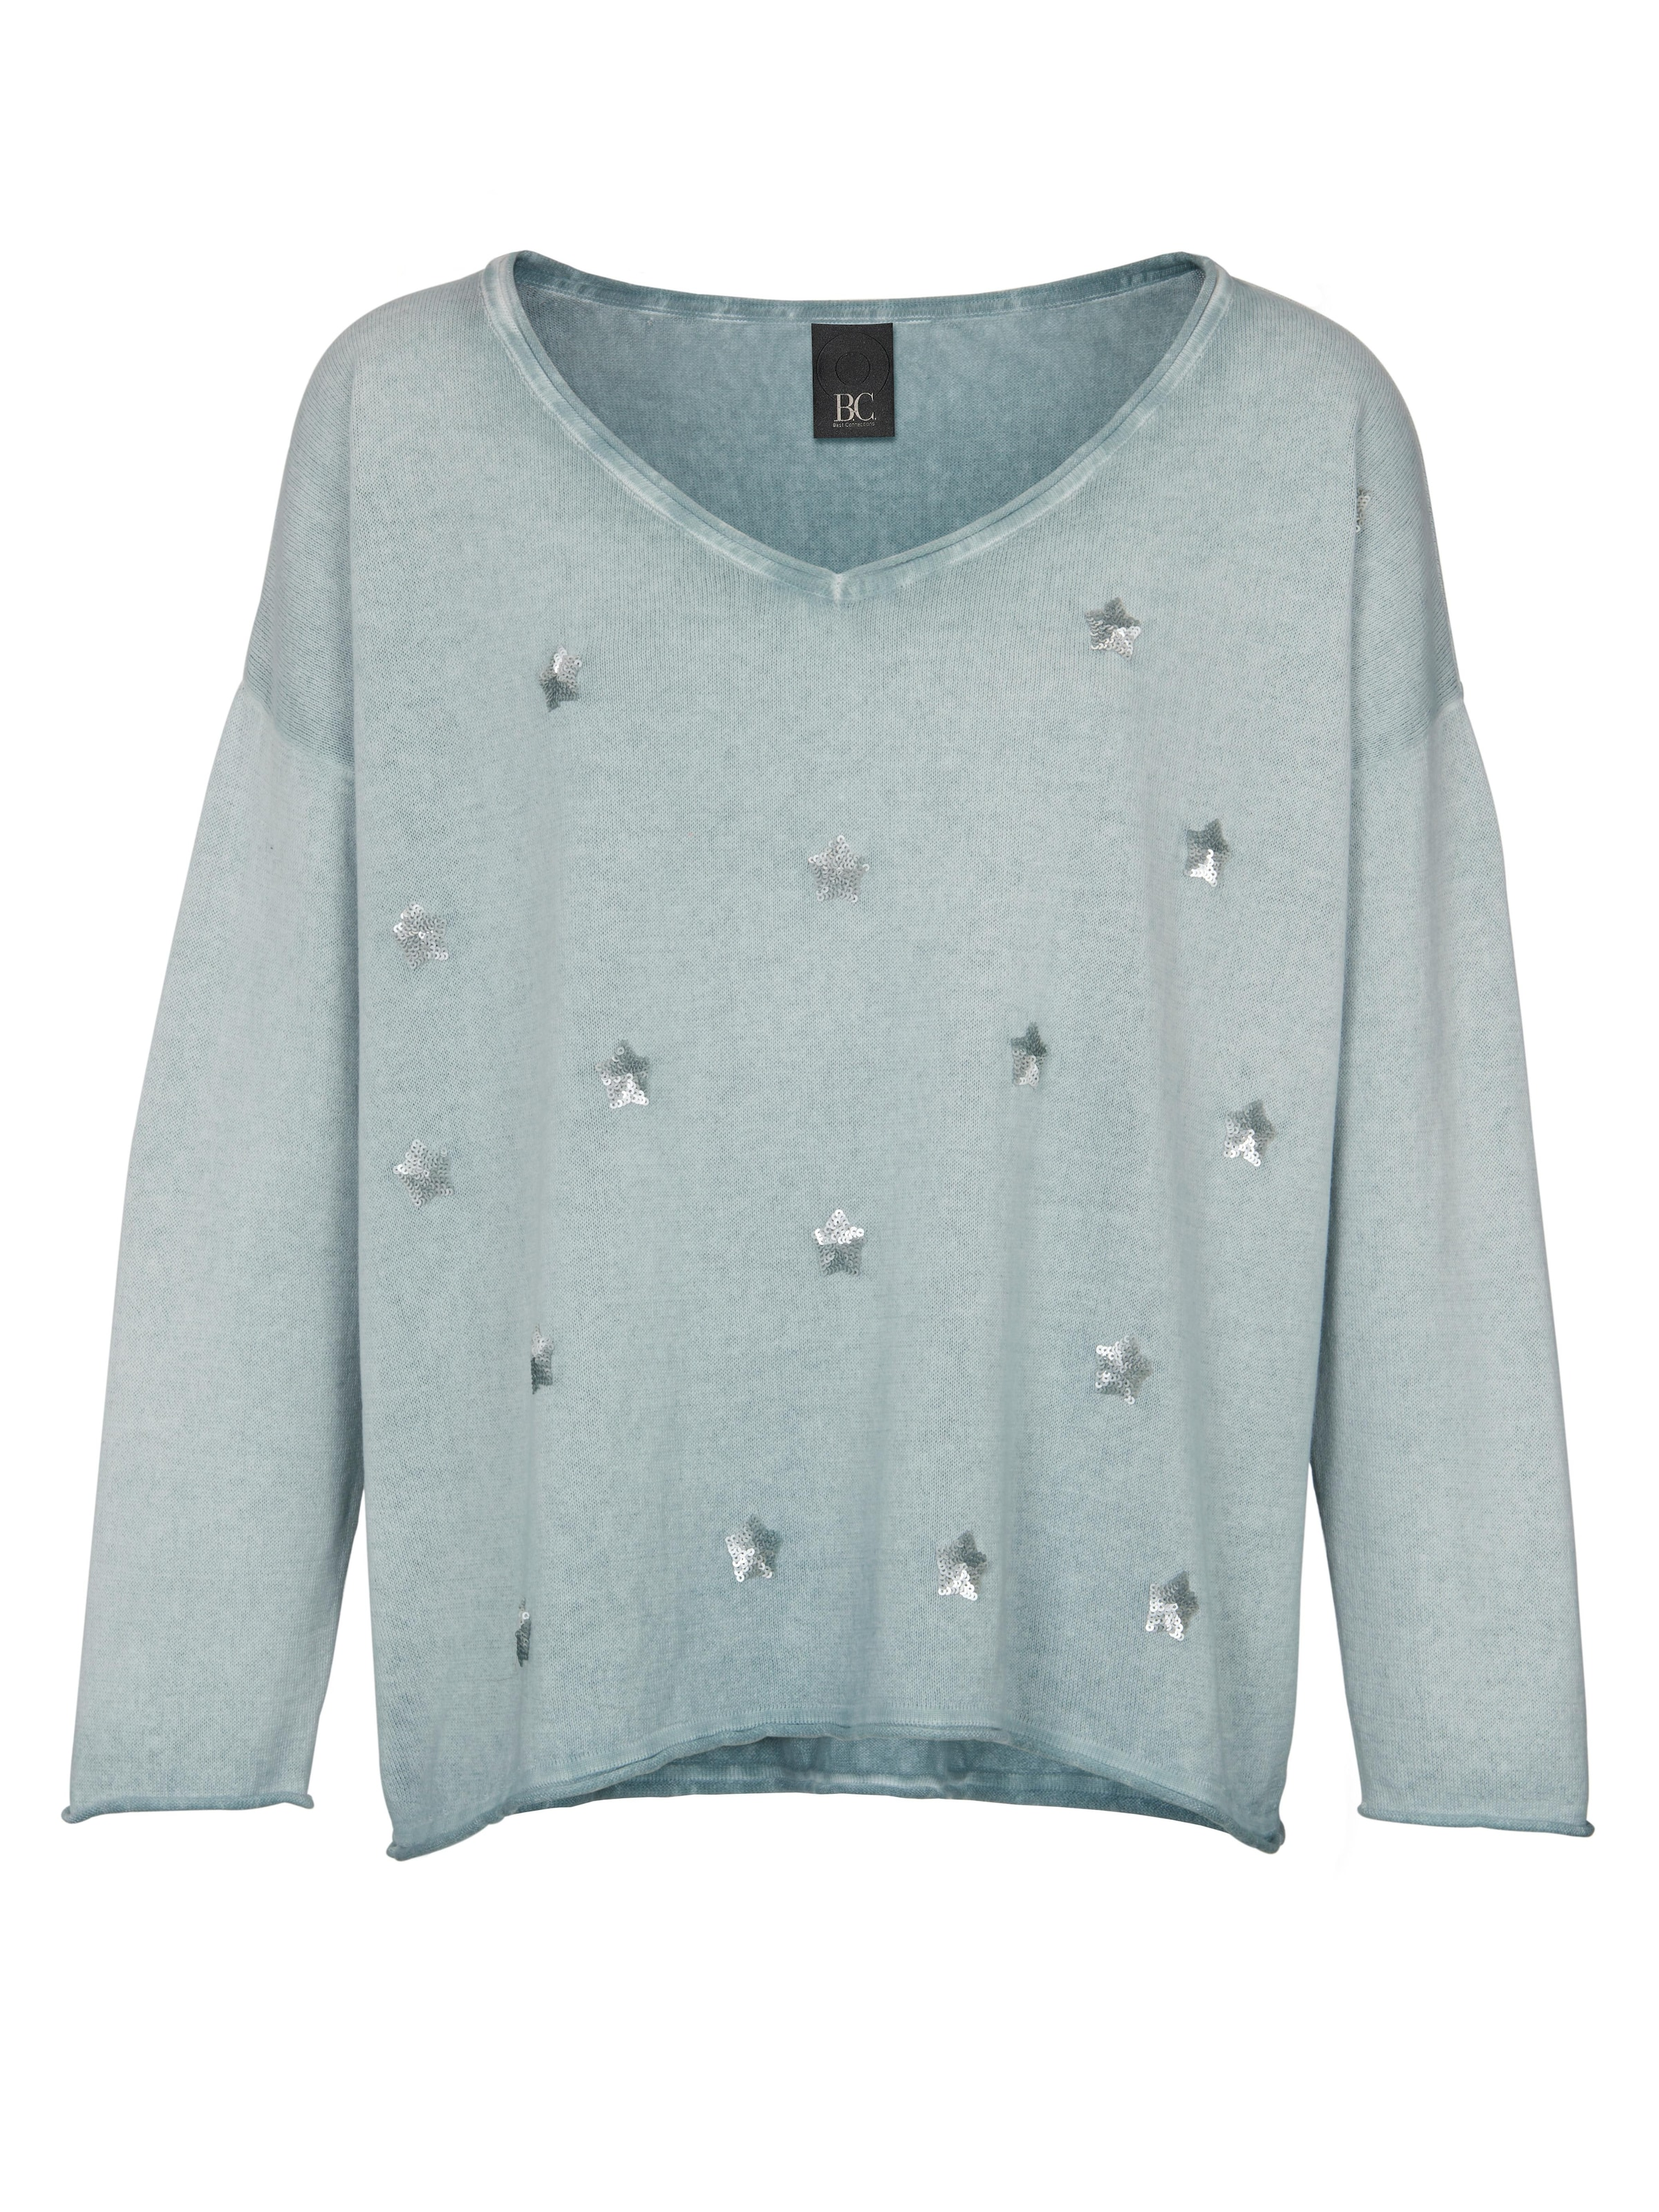 Heine Pullover Mint By cBest In B Connections A5jqR34L